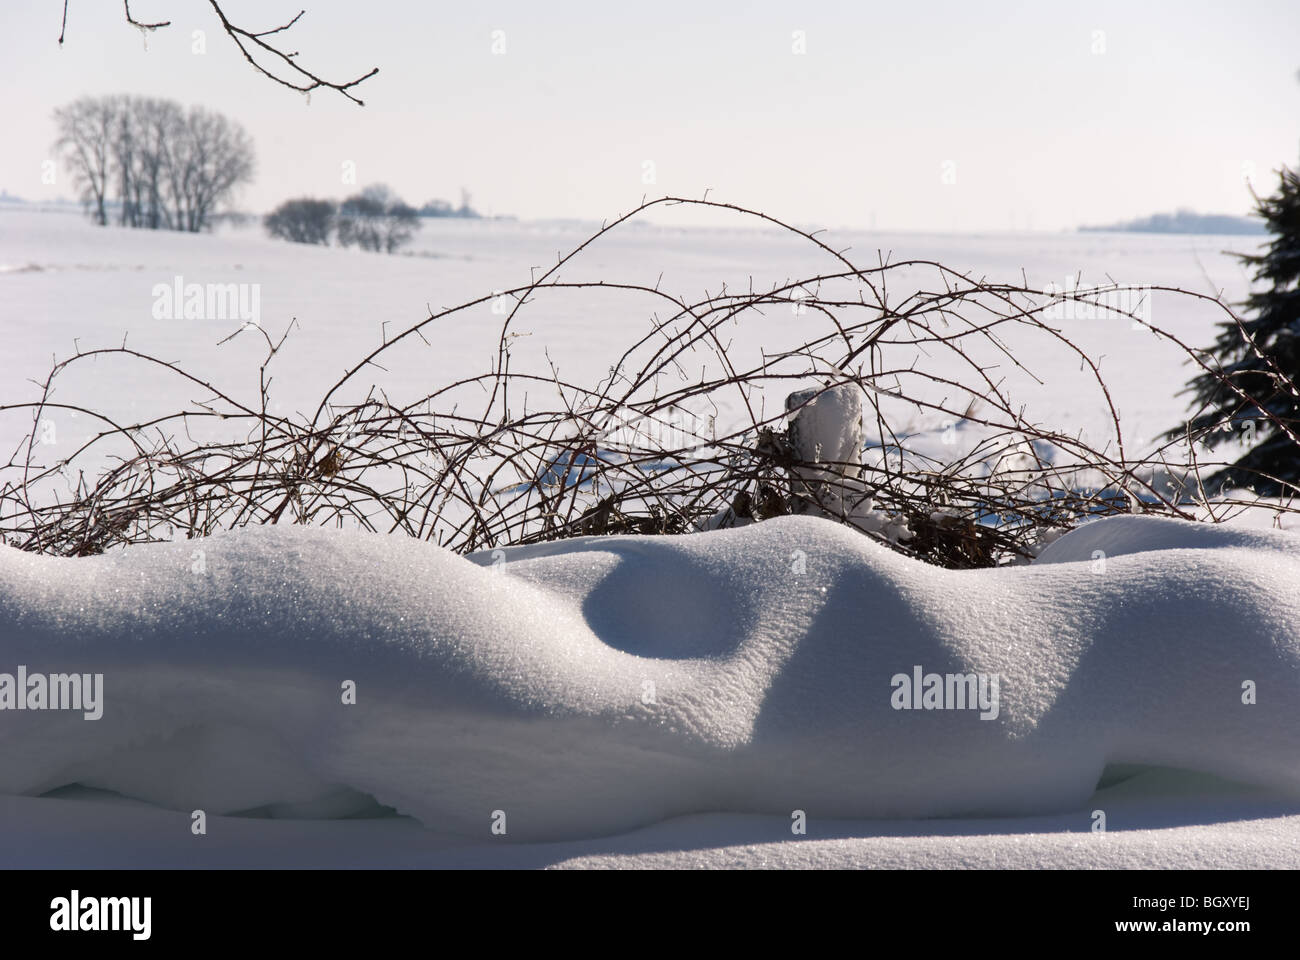 frost-encrusted pillowy snowdrifts sparkle in front of an idyllic vine-covered fence against the prairie horizon - Stock Image